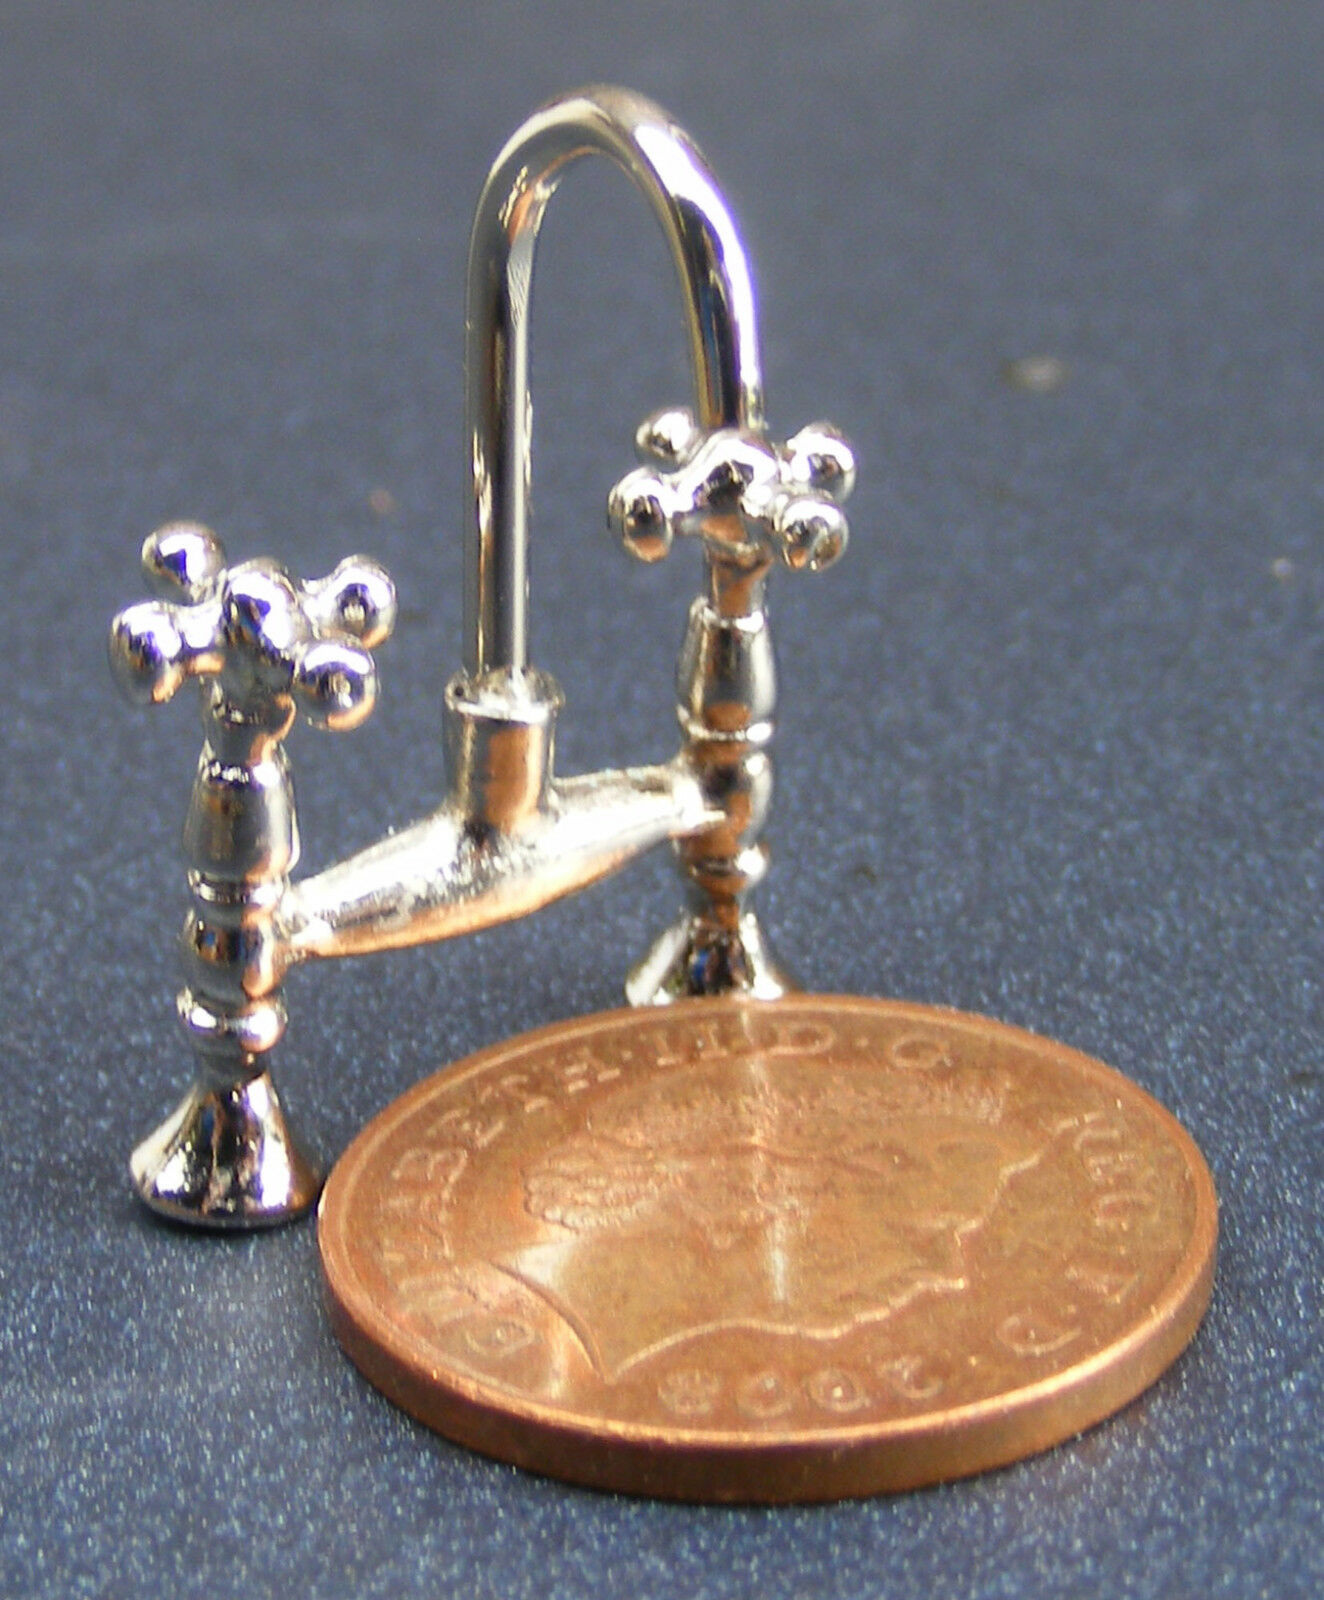 1:12 Scale Set Of 4 Silver Metal Taps Faucets Tumdee Dolls House Accessory 697